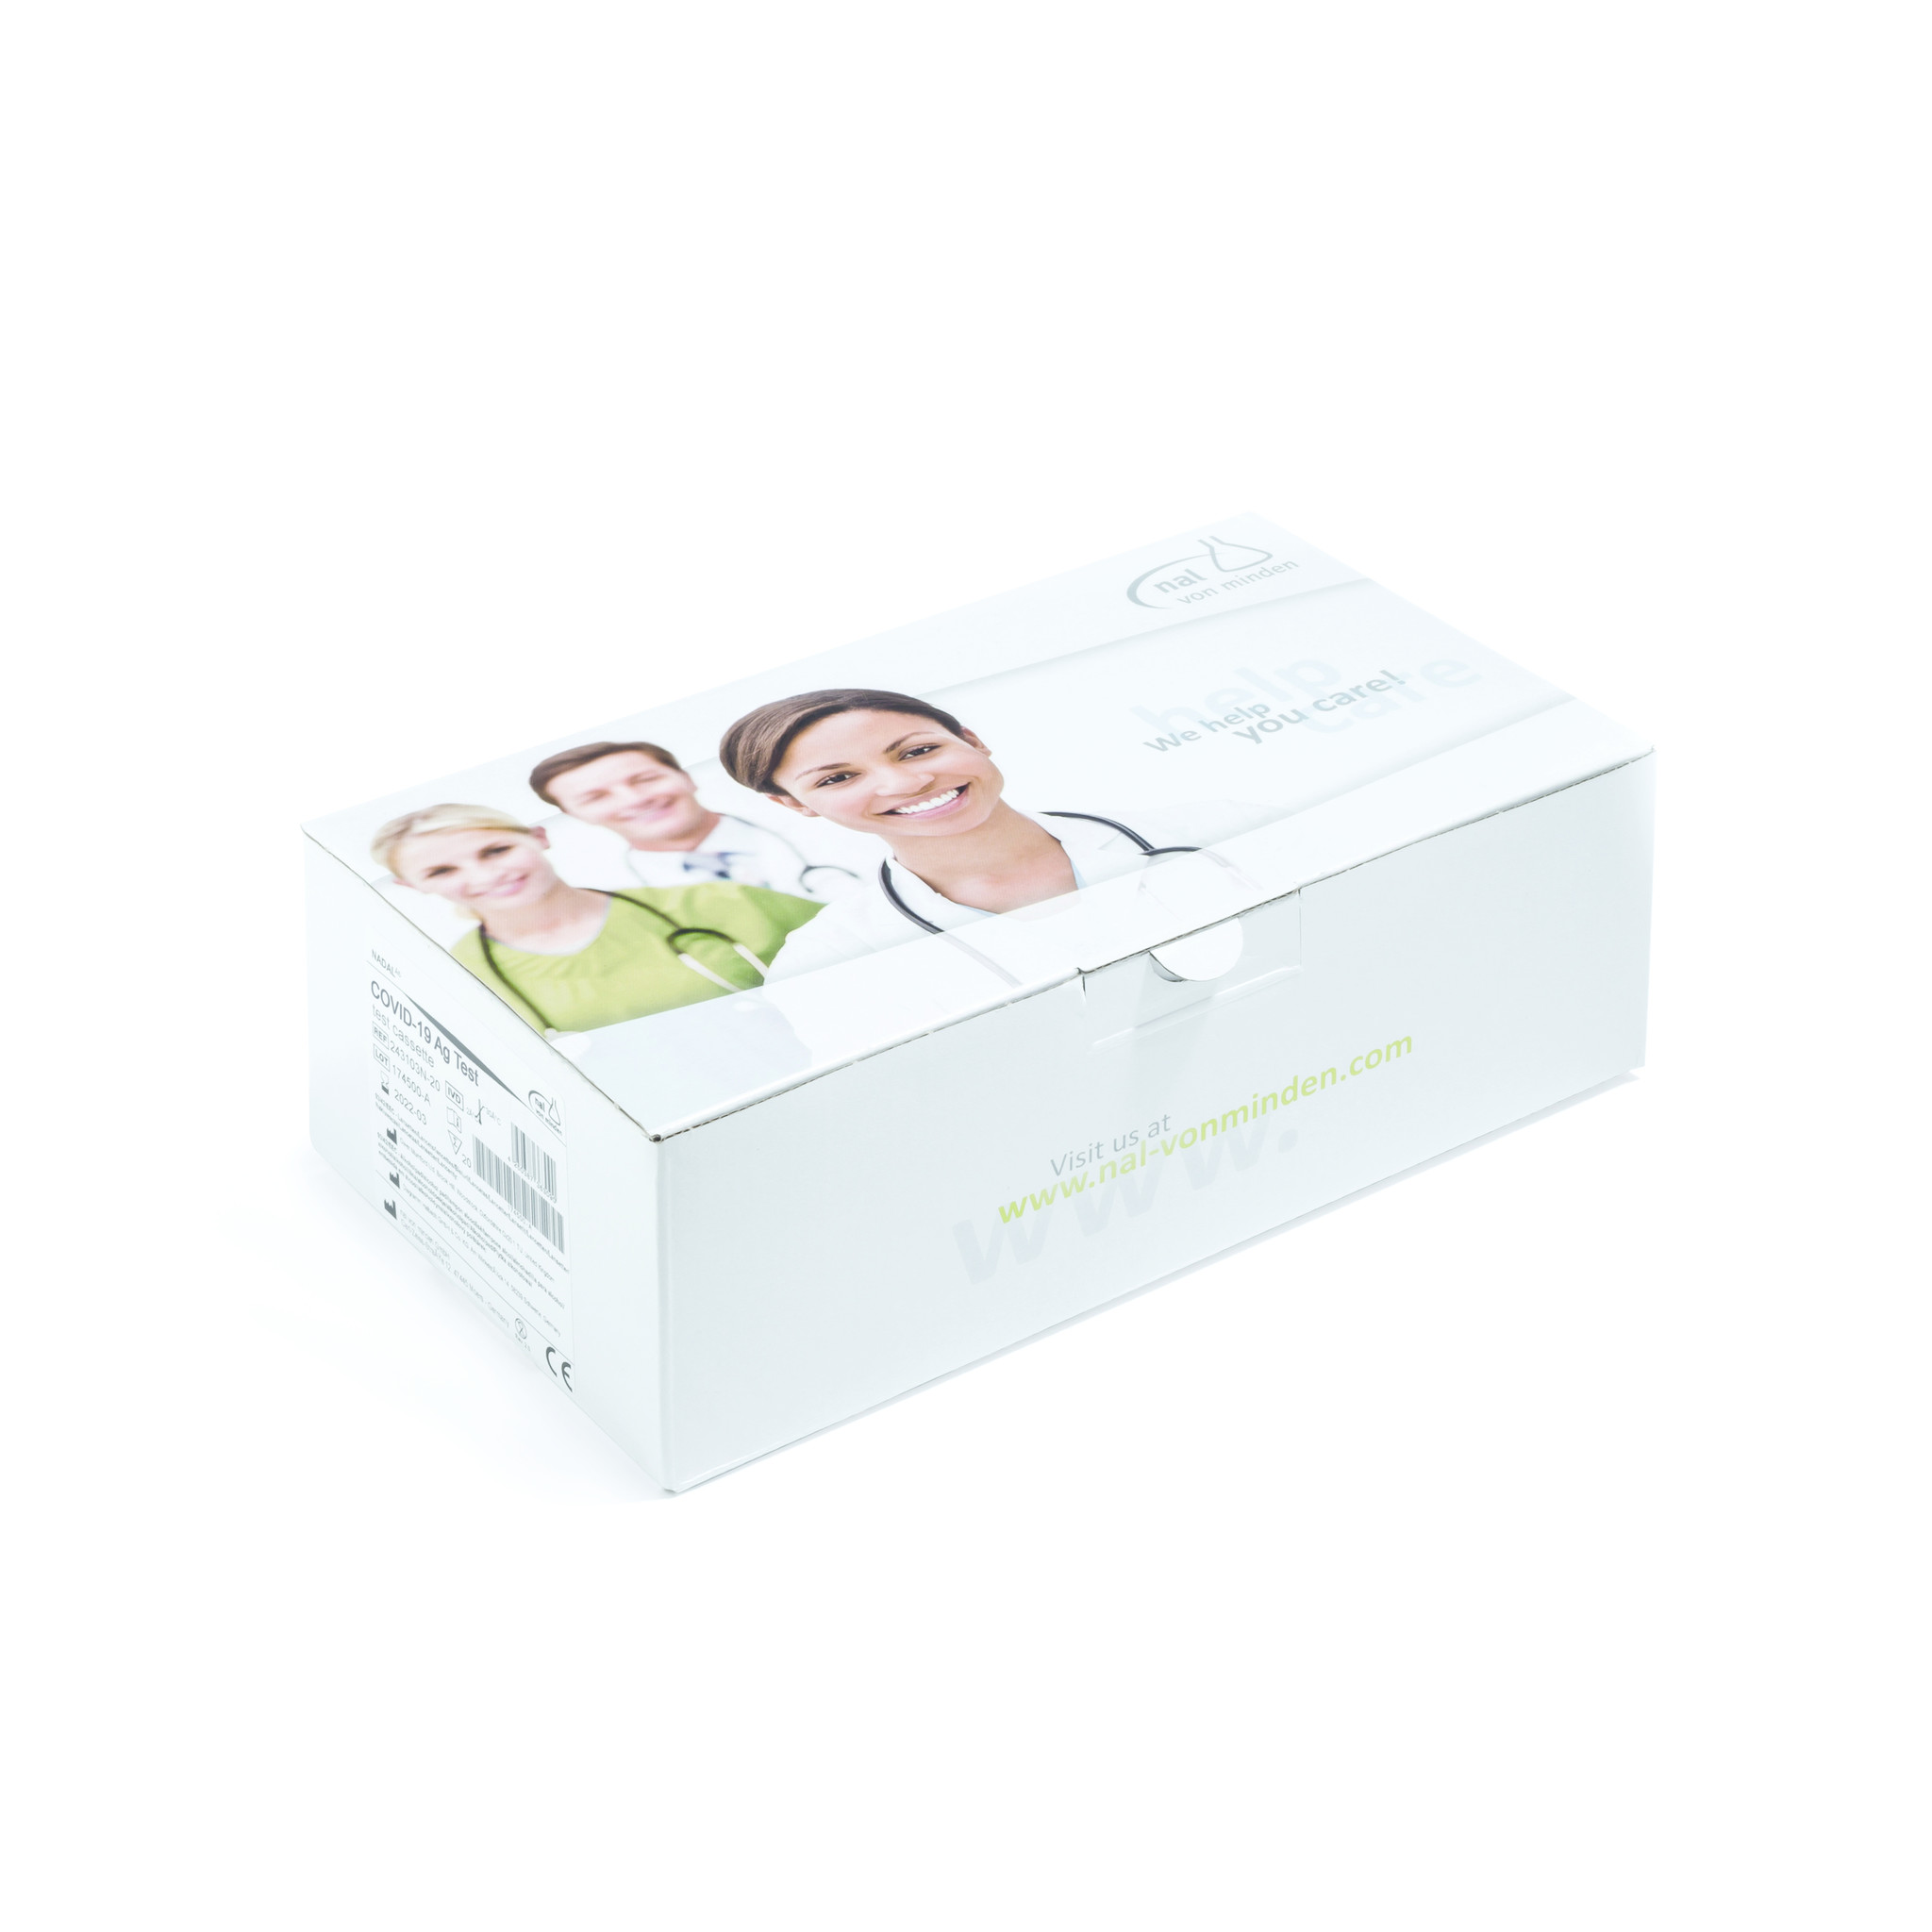 NADAL® COVID-19 Antigen Rapid 20 Tests detects Delta variant, nose Swab. Certified in all of Europe